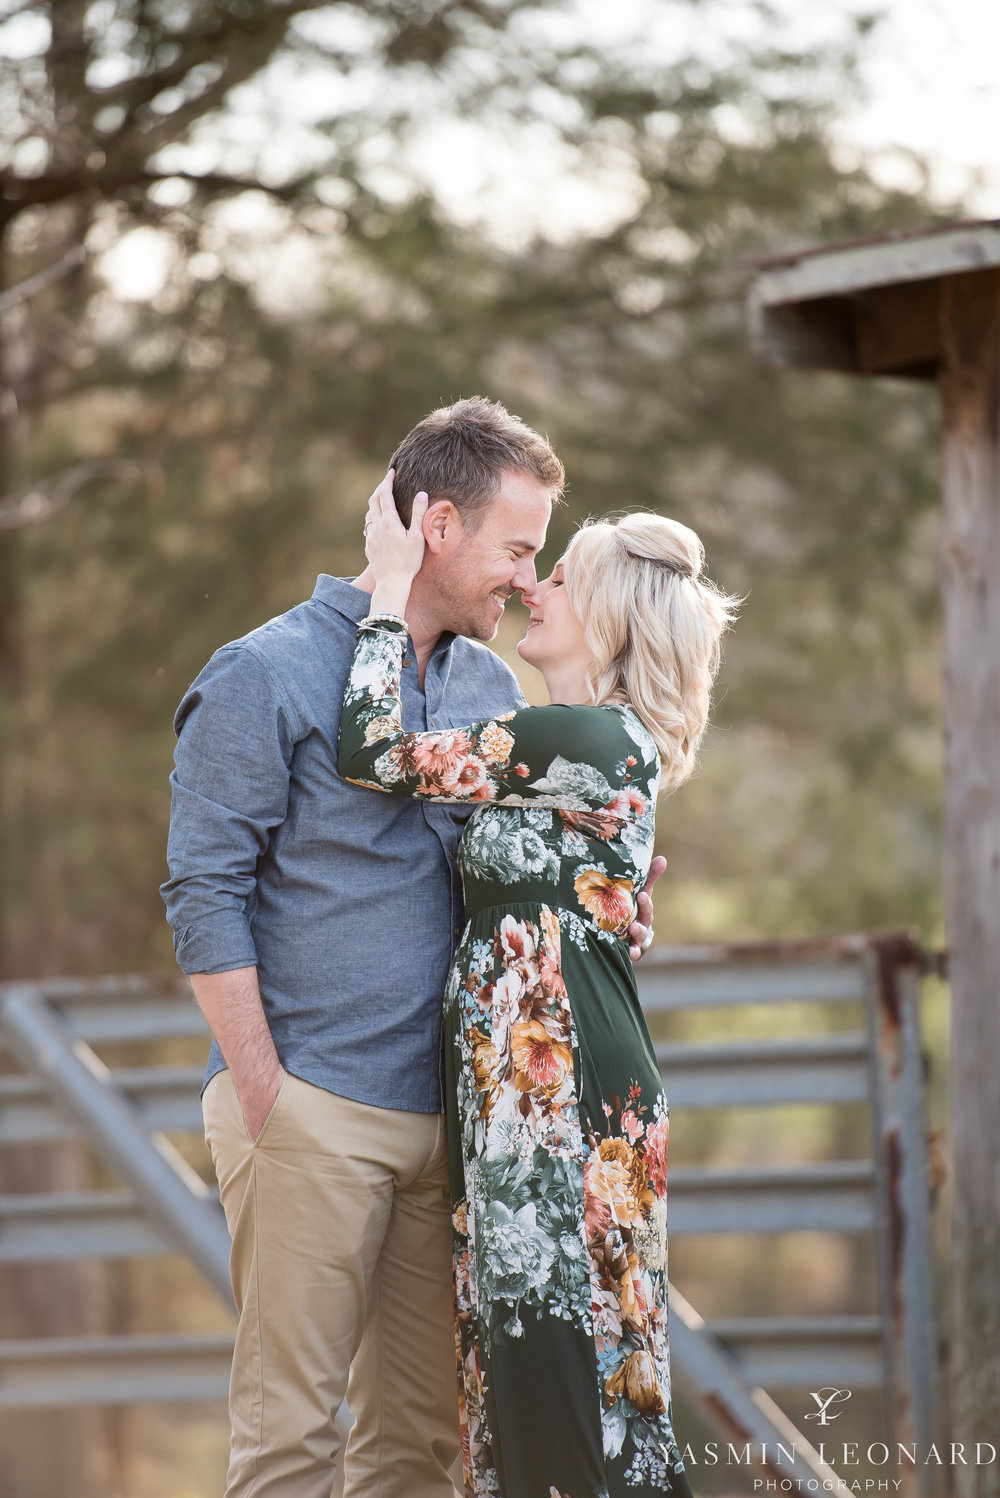 High Point Wedding Photographer - NC Wedding Photographer - Yasmin Leonard Photography - Engagement Poses - Engagement Ideas - Outdoor Engagement Session-13.jpg